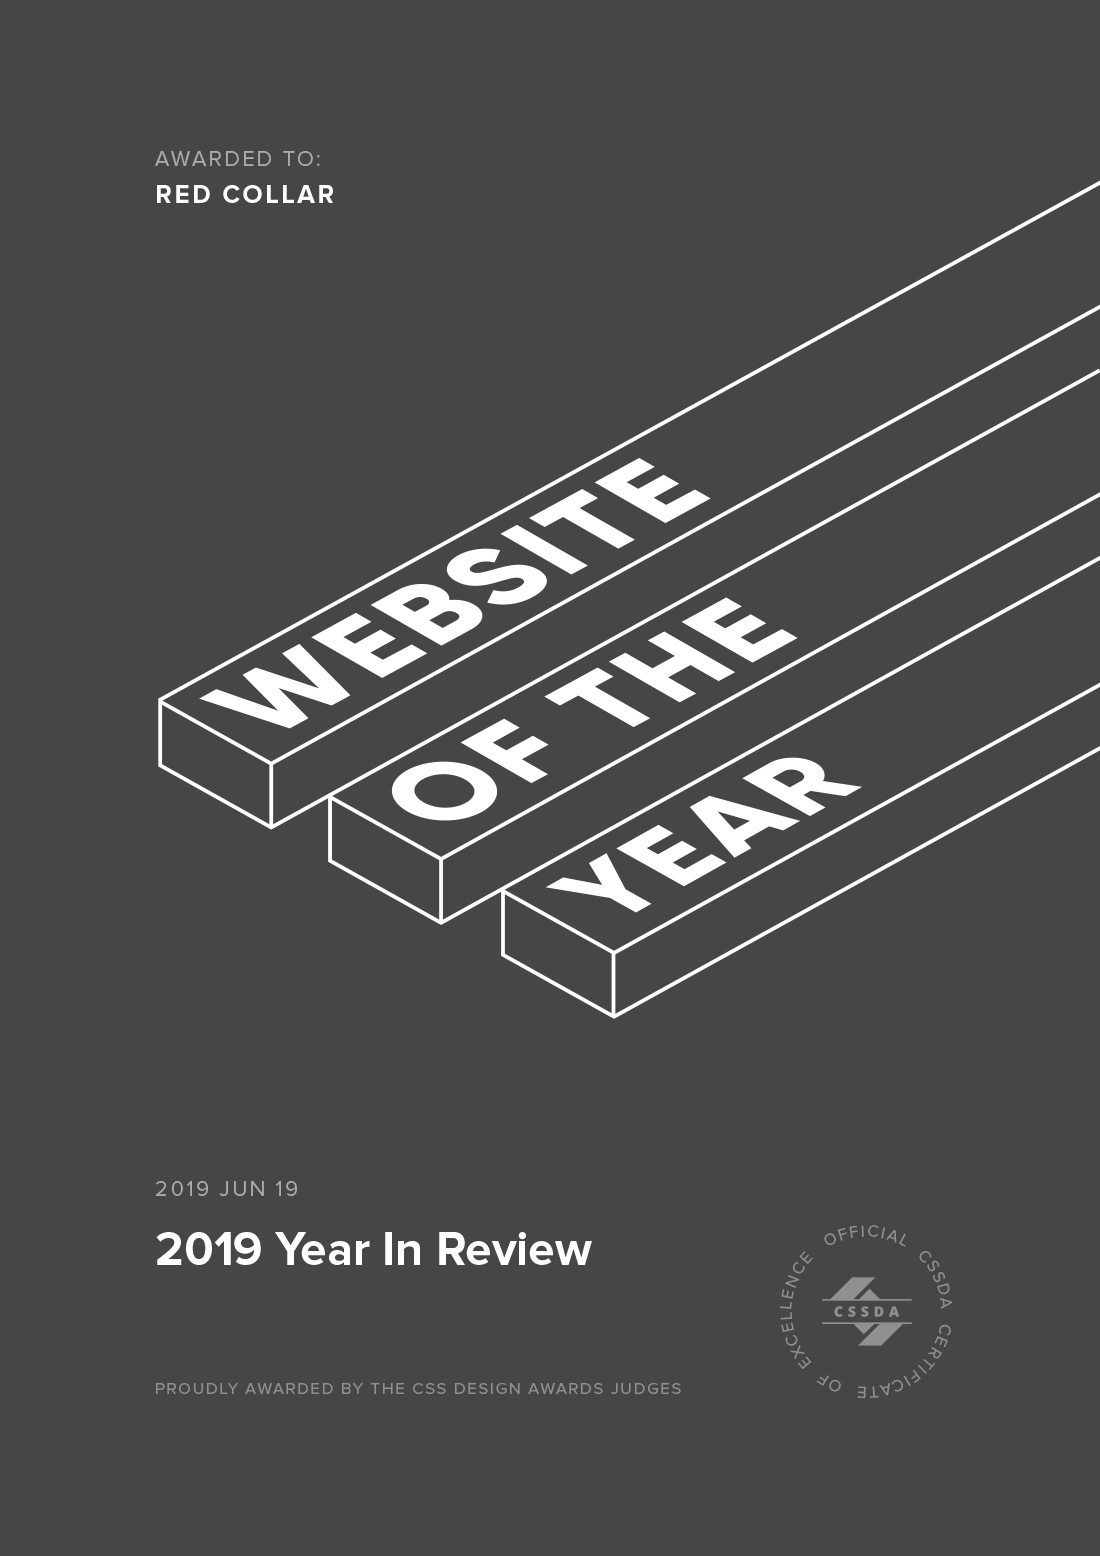 Website of the Year Award Certificate